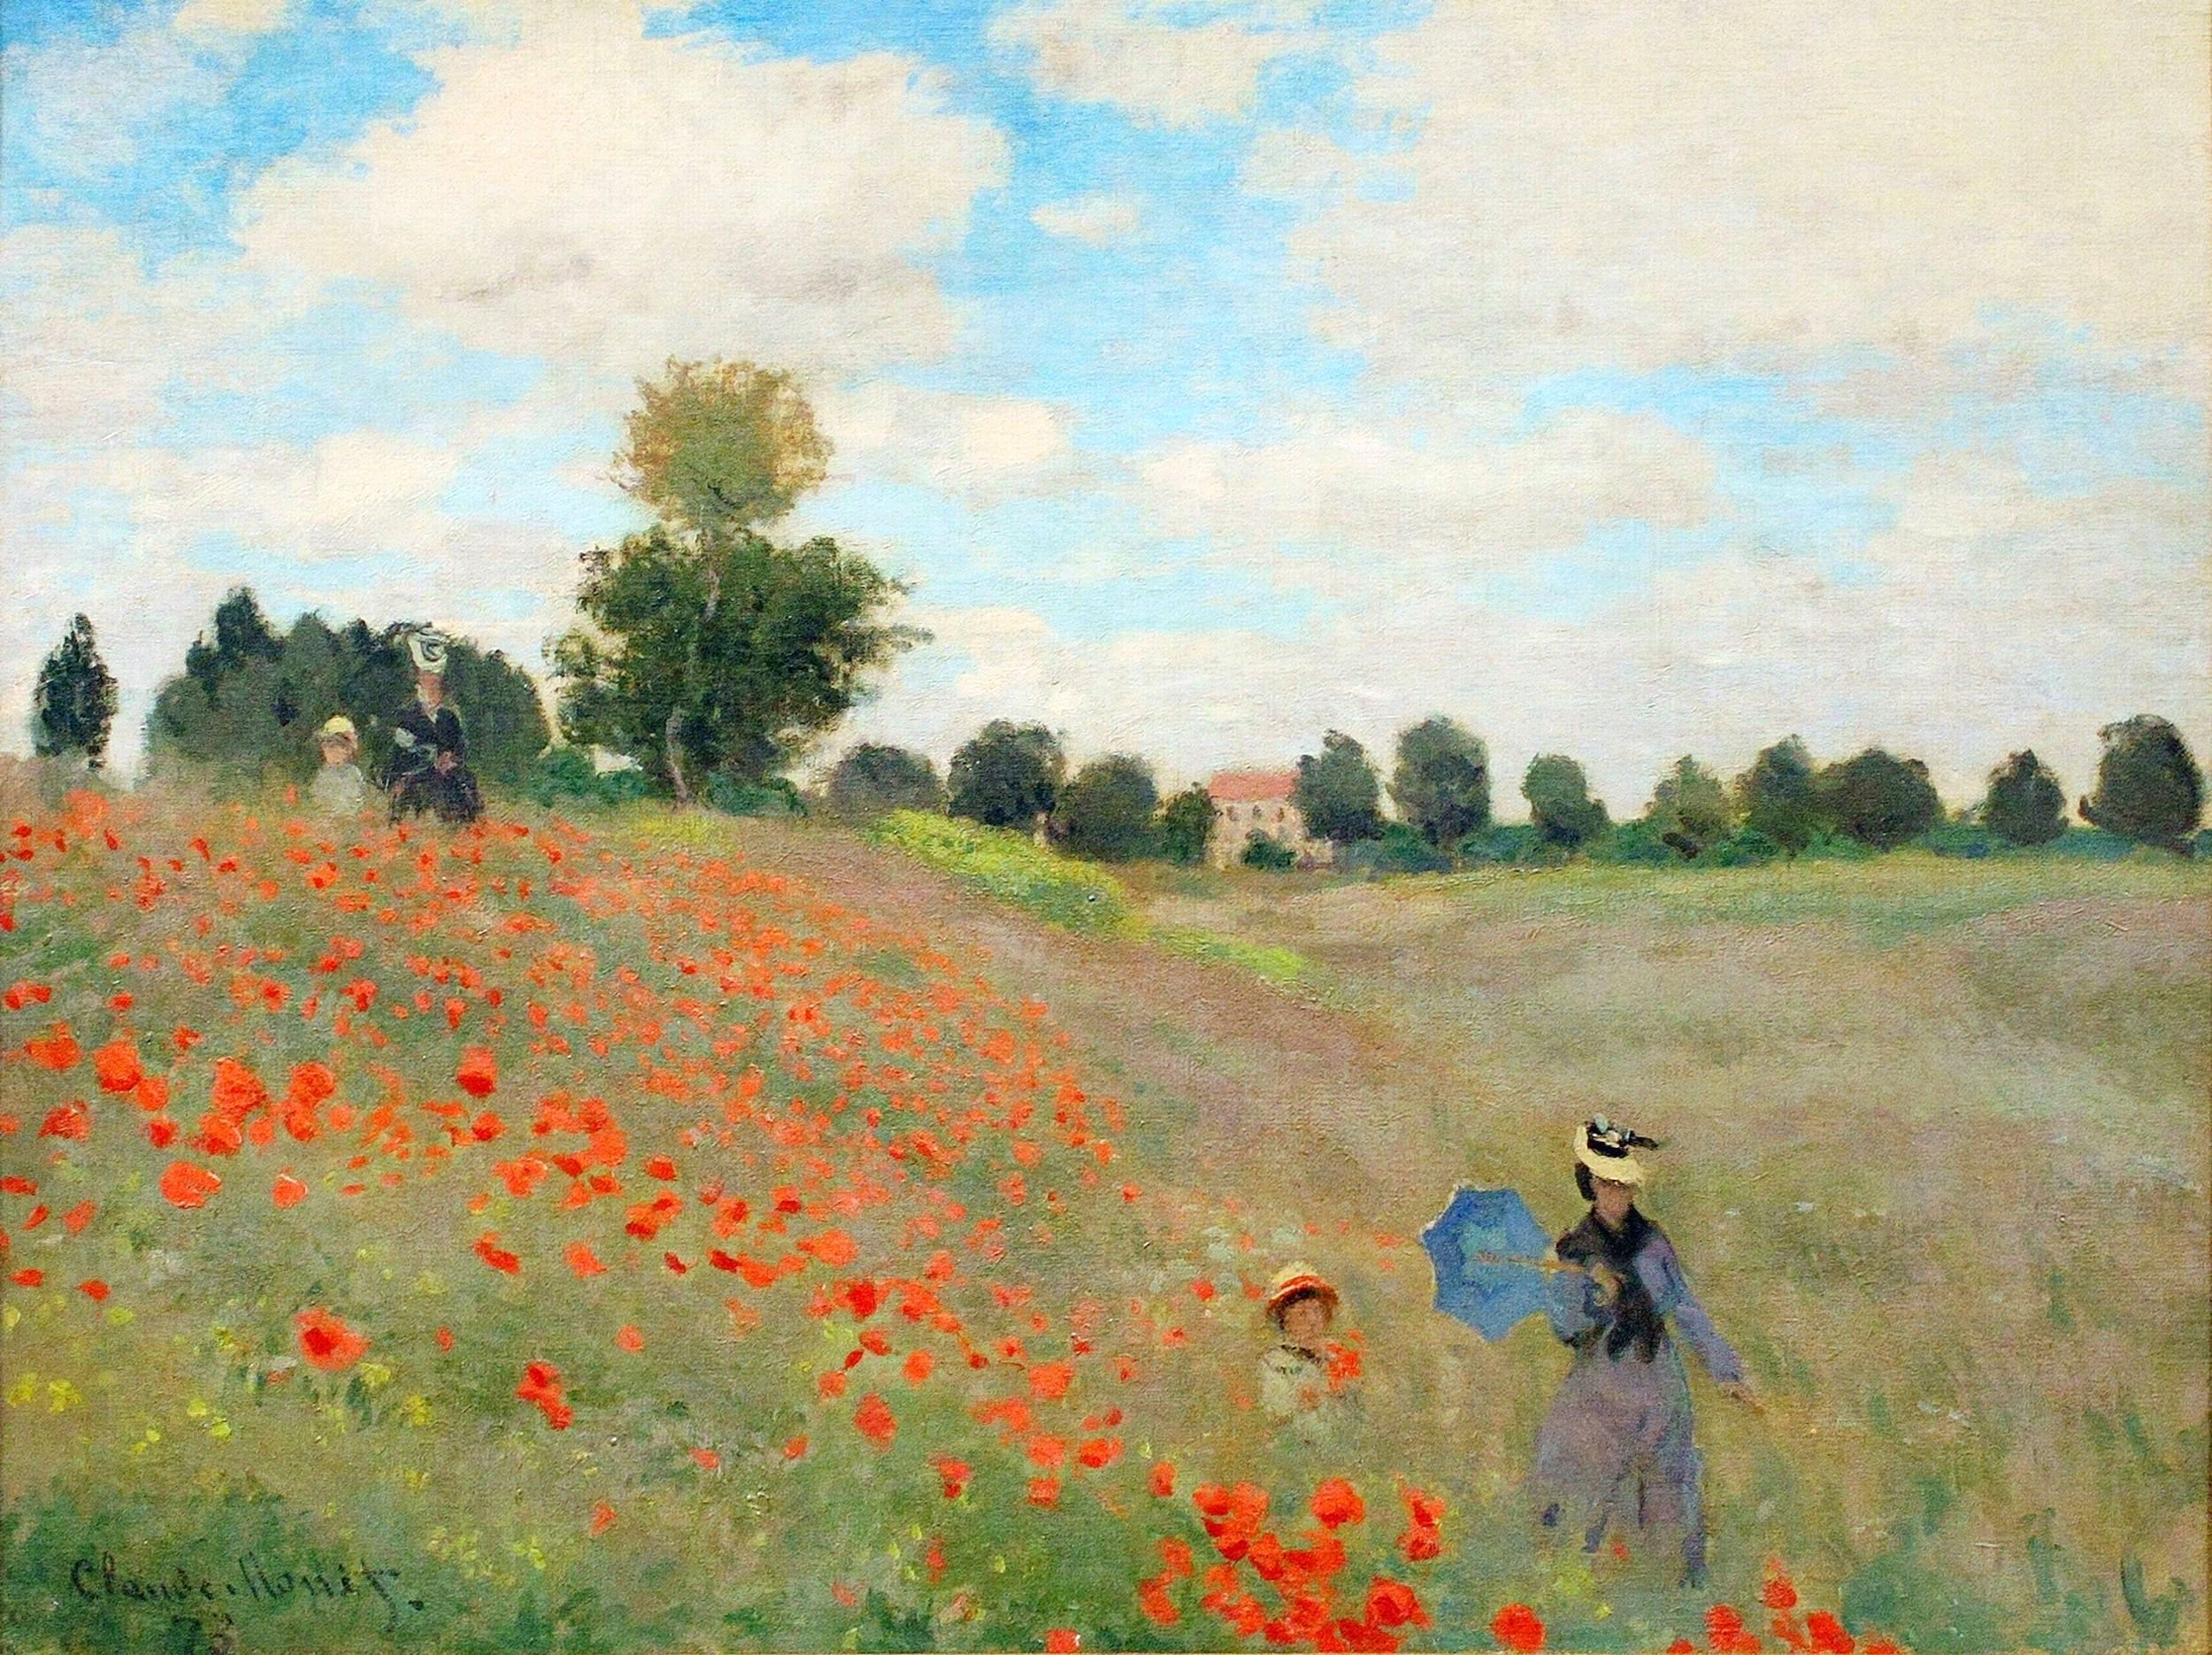 """claude monet canvas art print picture 12""""x16"""" framed and ready to hang:  Amazon.co.uk: Kitchen & Home"""